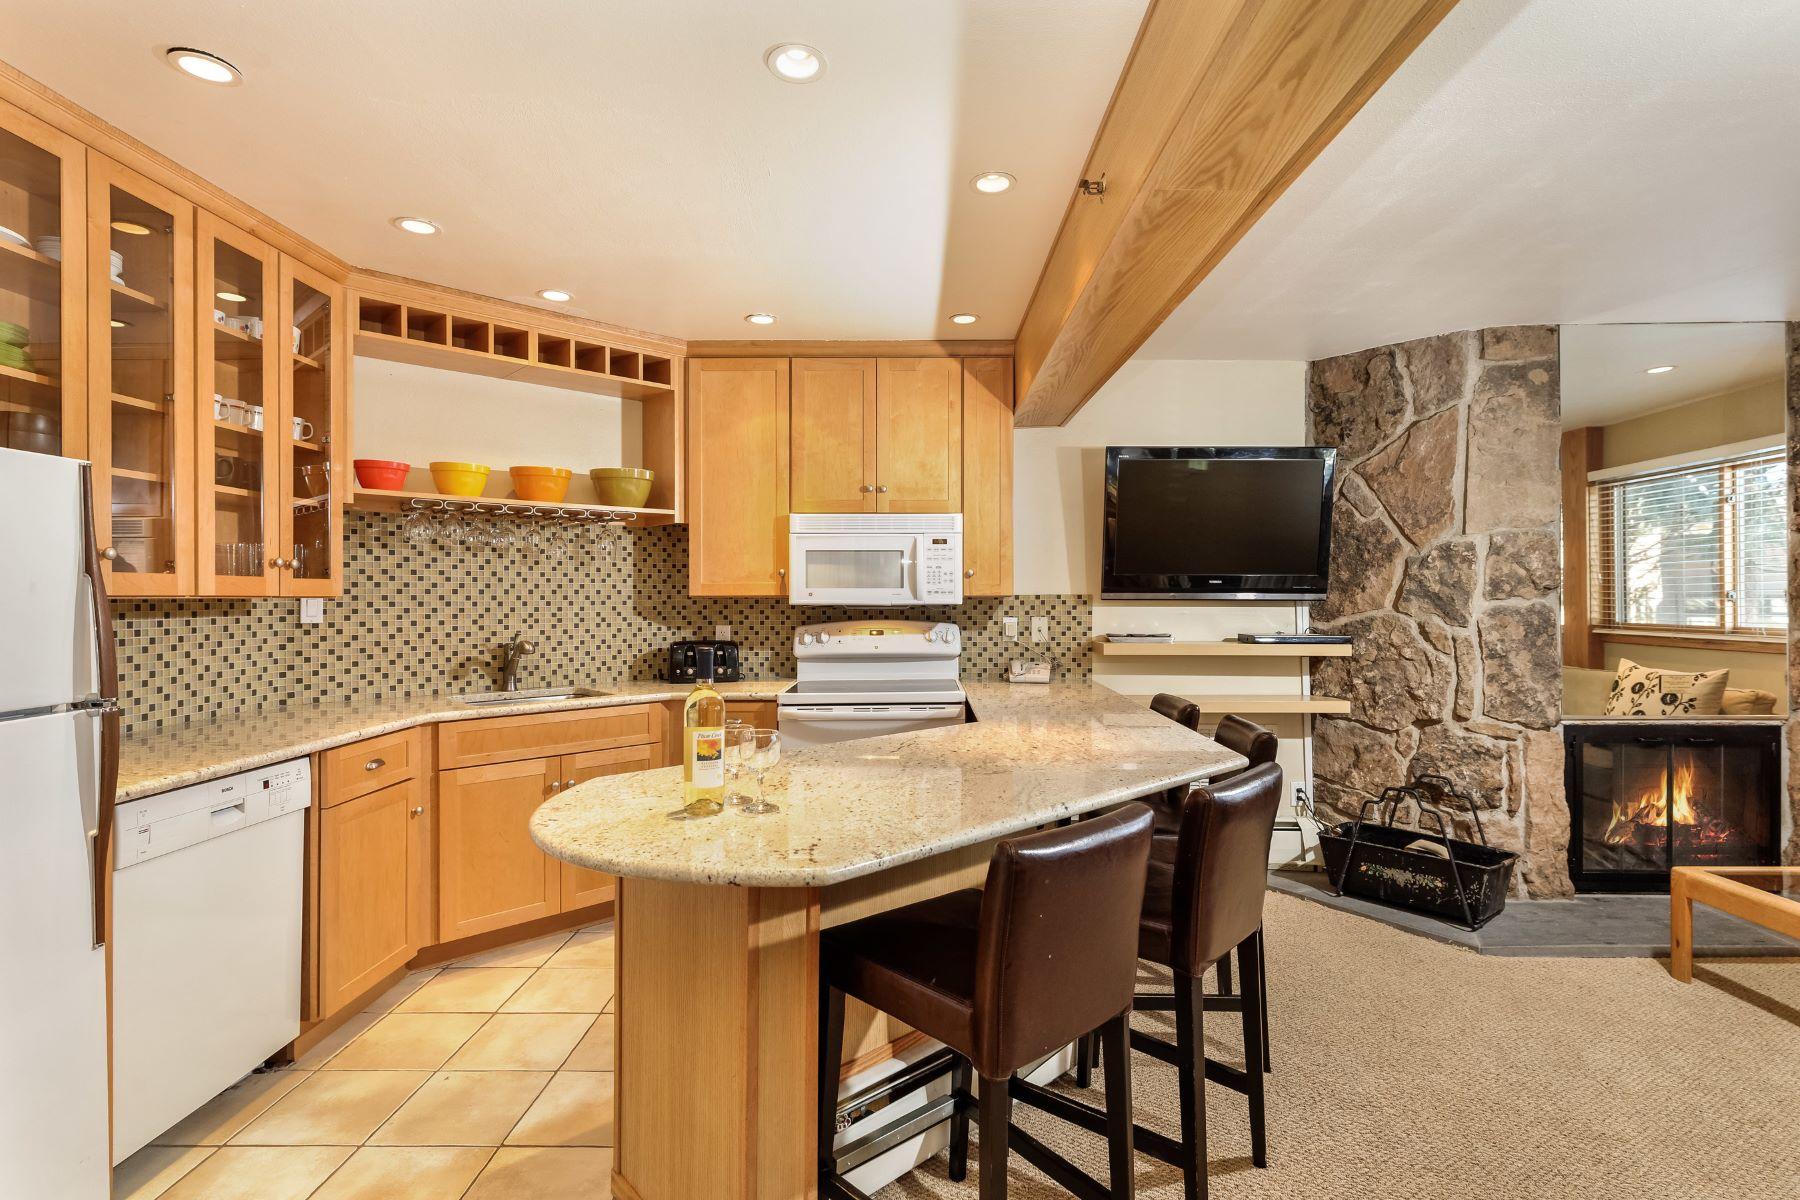 Condominium for Sale at Laurelwood Unit: 105 640 Carriage Way, Unit 105 Snowmass Village, Colorado, 81615 United States